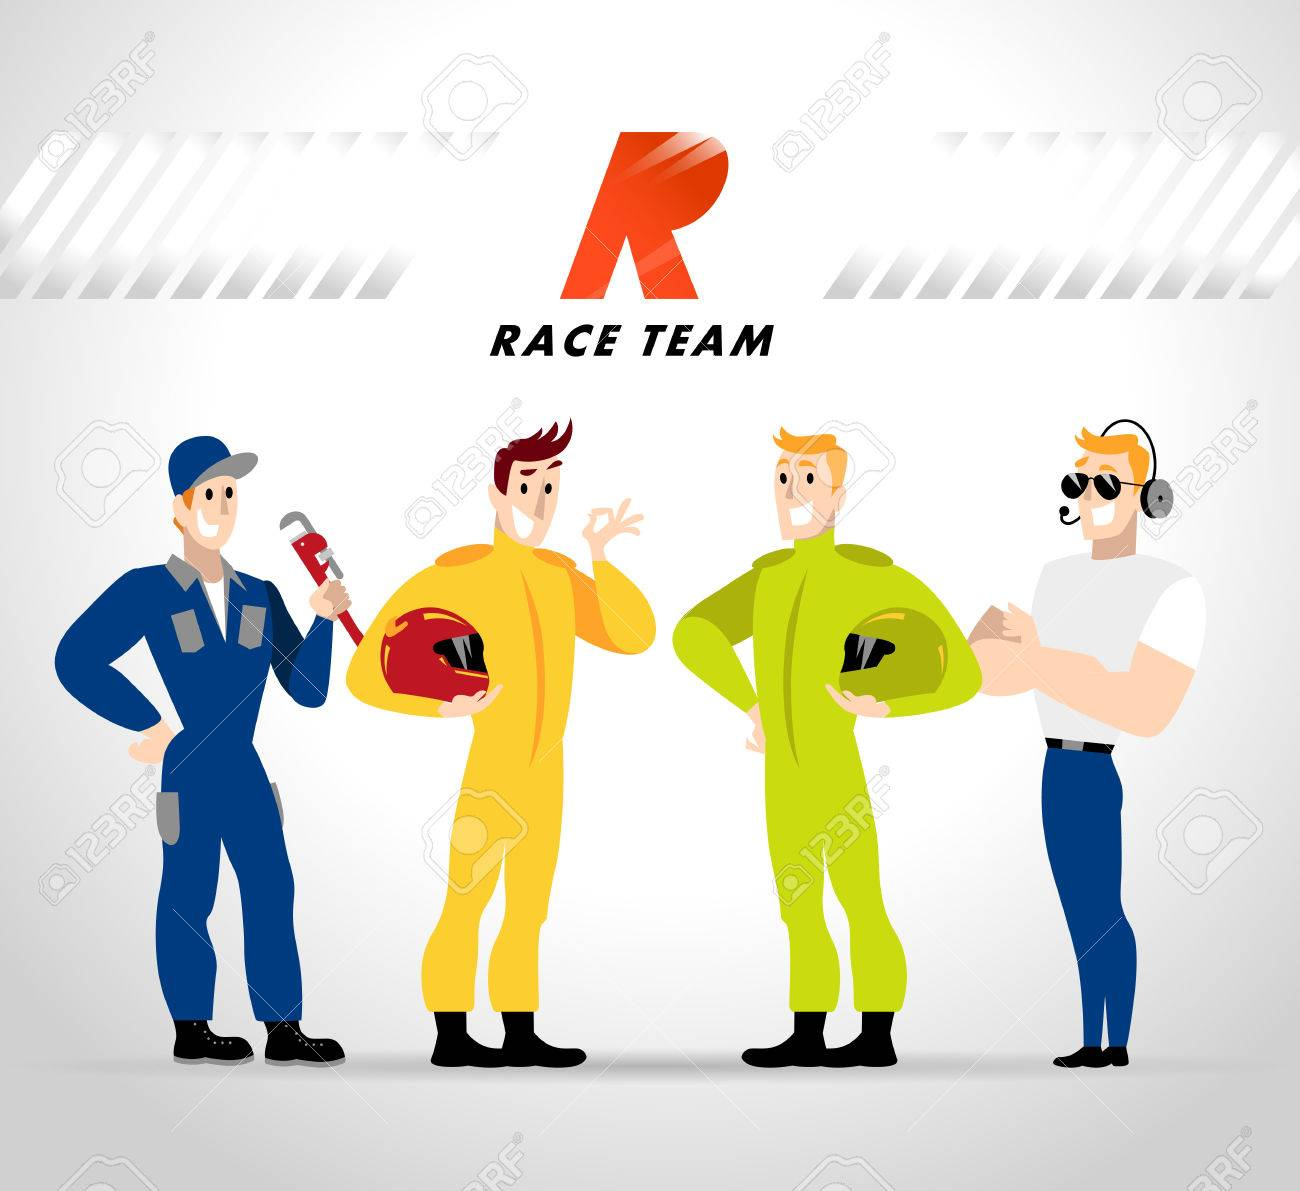 Vector flat profession characters. Human profession icon. Friendly, happy people portrait. Sport race team, car service group, people set. Auto logo, insignia. Man, boy, guy icon. Cartoon style. - 60936051